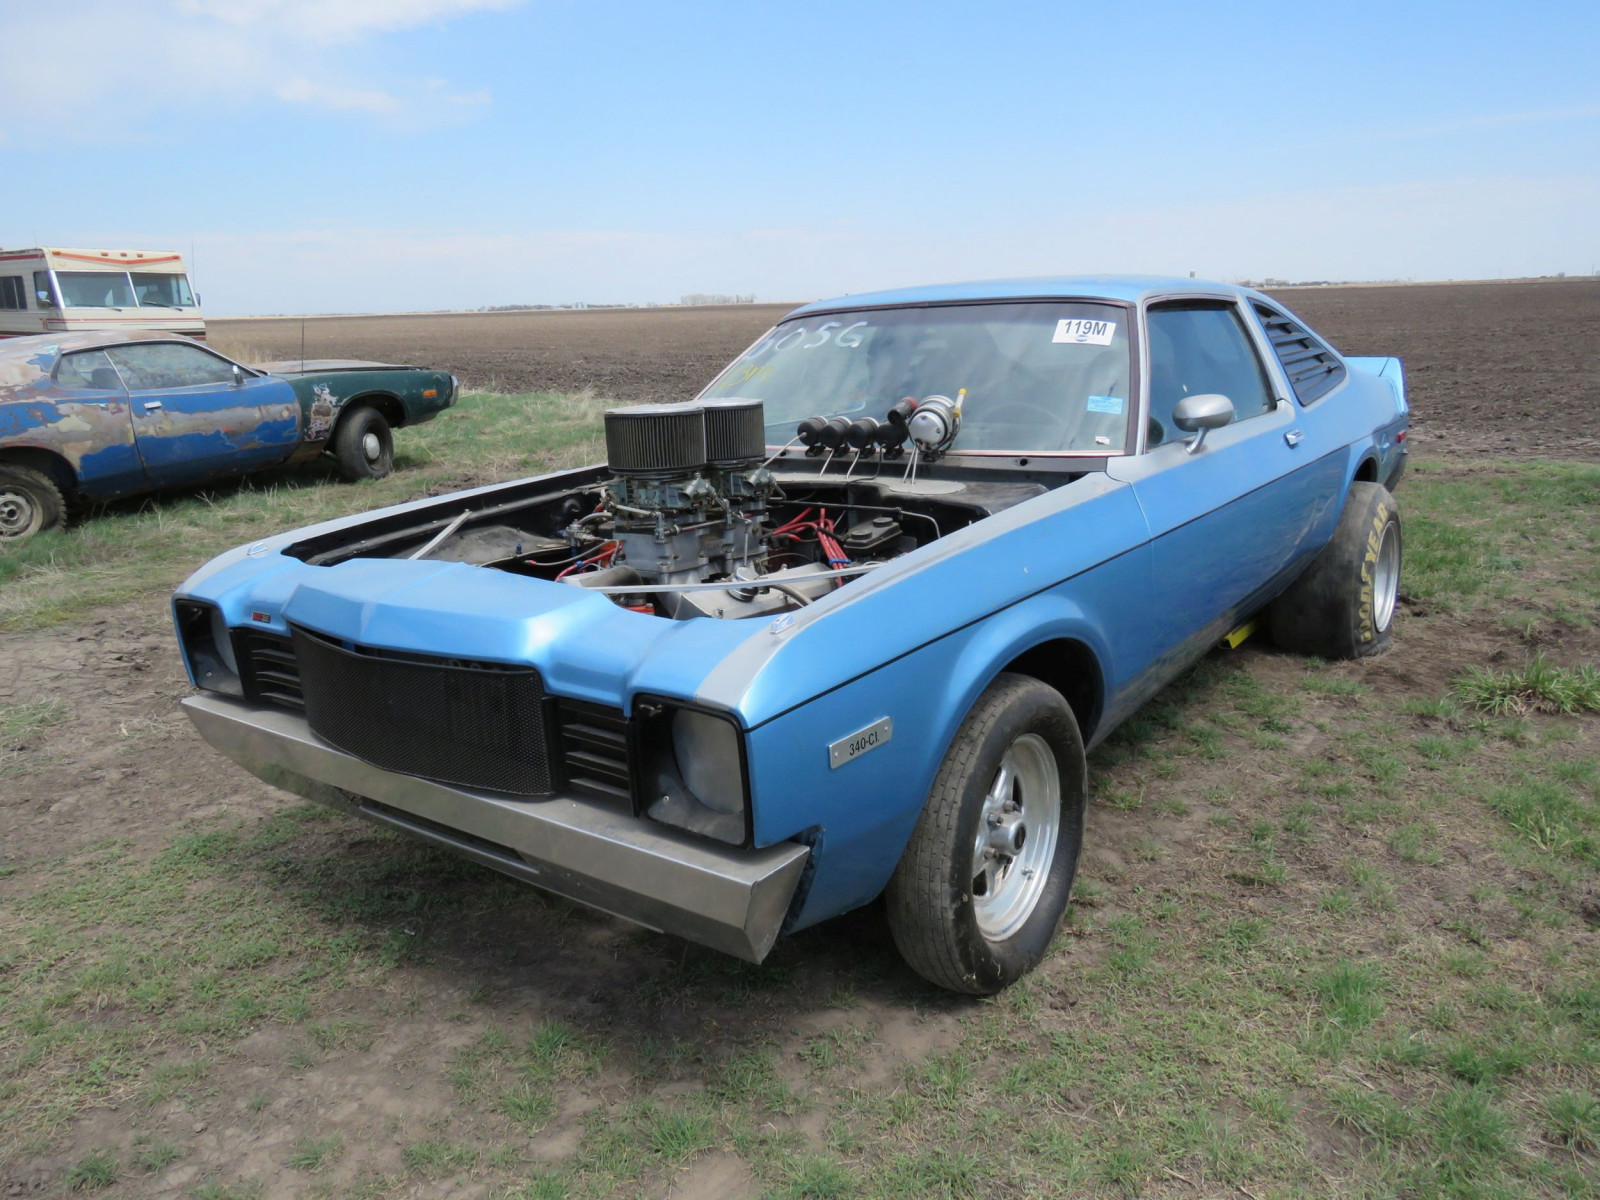 1979 Dodge Aspen Drag Car - Image 1